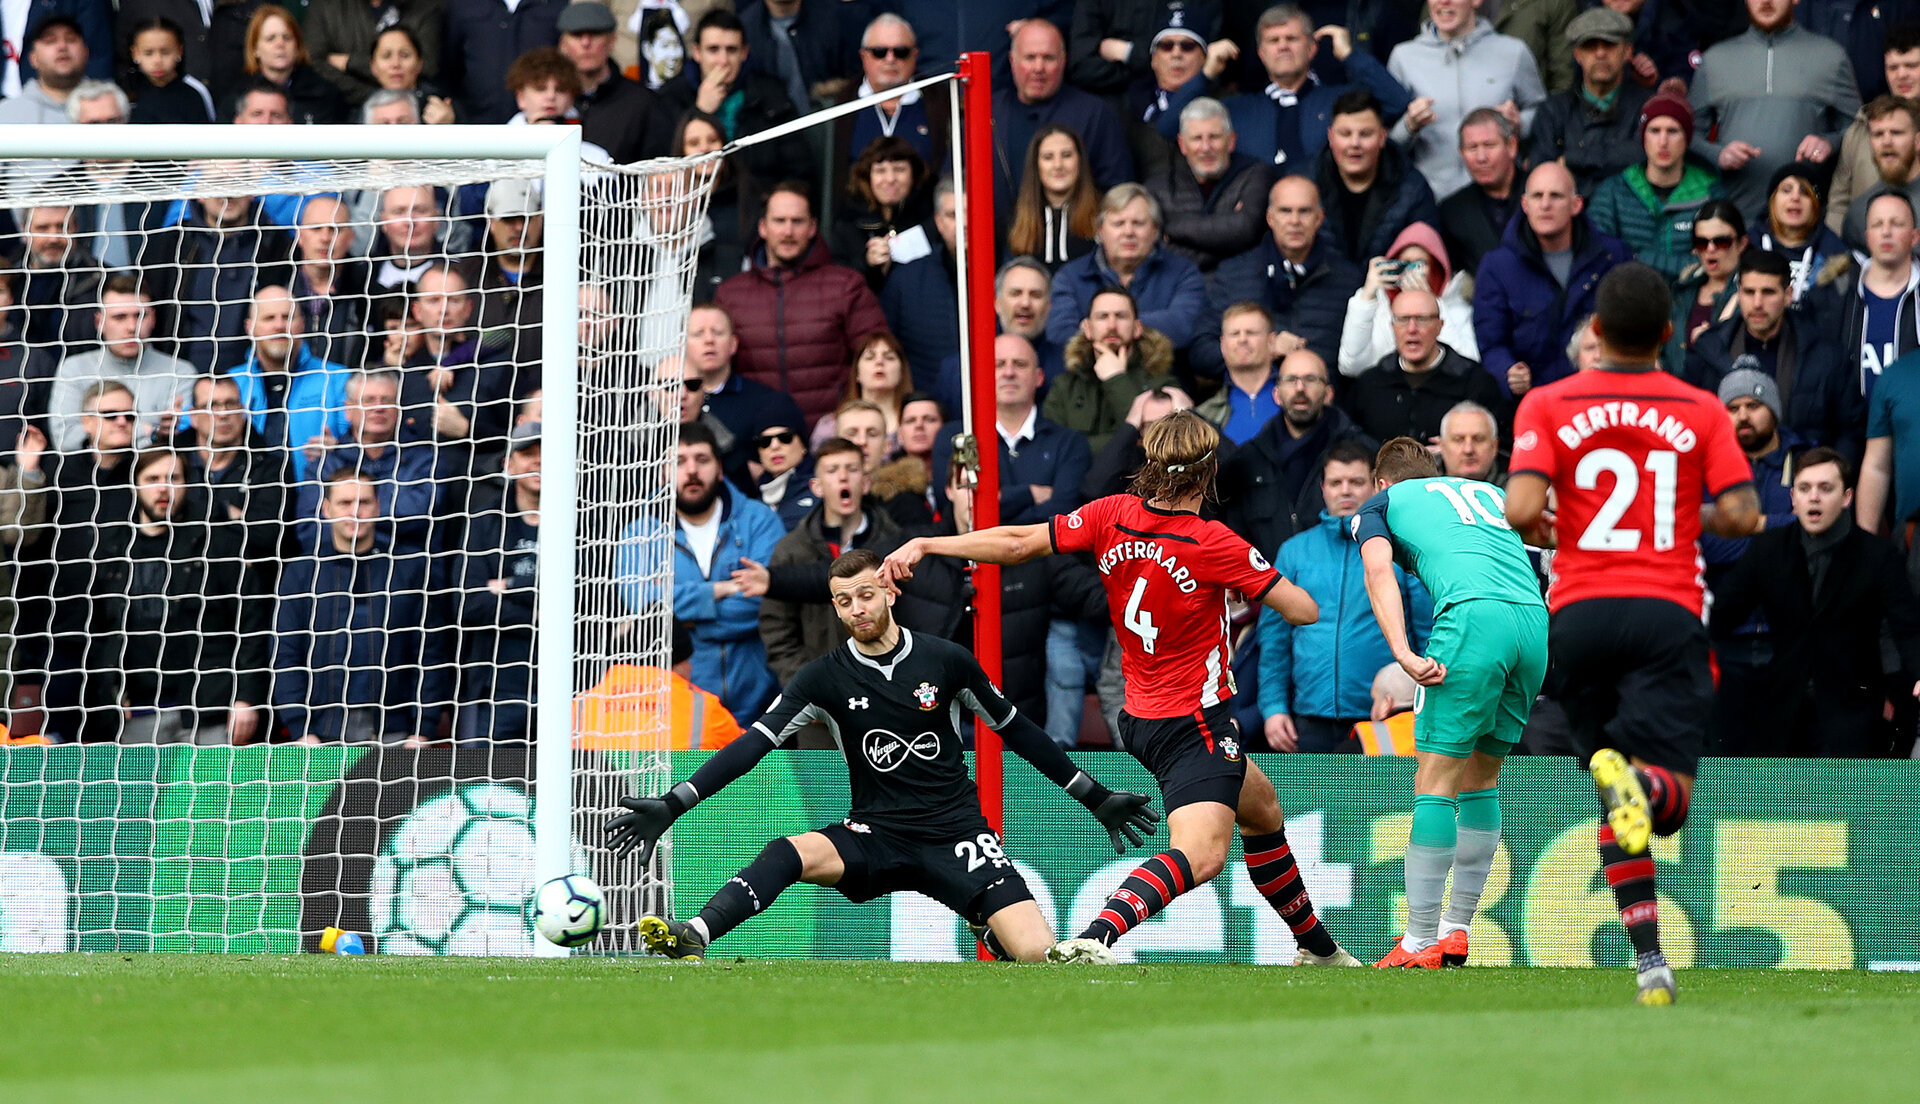 SOUTHAMPTON, ENGLAND - MARCH 09: Harry Kane(R) of Tottenham Hotspur opens the scoring during the Premier League match between Southampton FC and Tottenham Hotspur at St Mary's Stadium on March 09, 2019 in Southampton, United Kingdom. (Photo by Matt Watson/Southampton FC via Getty Images)